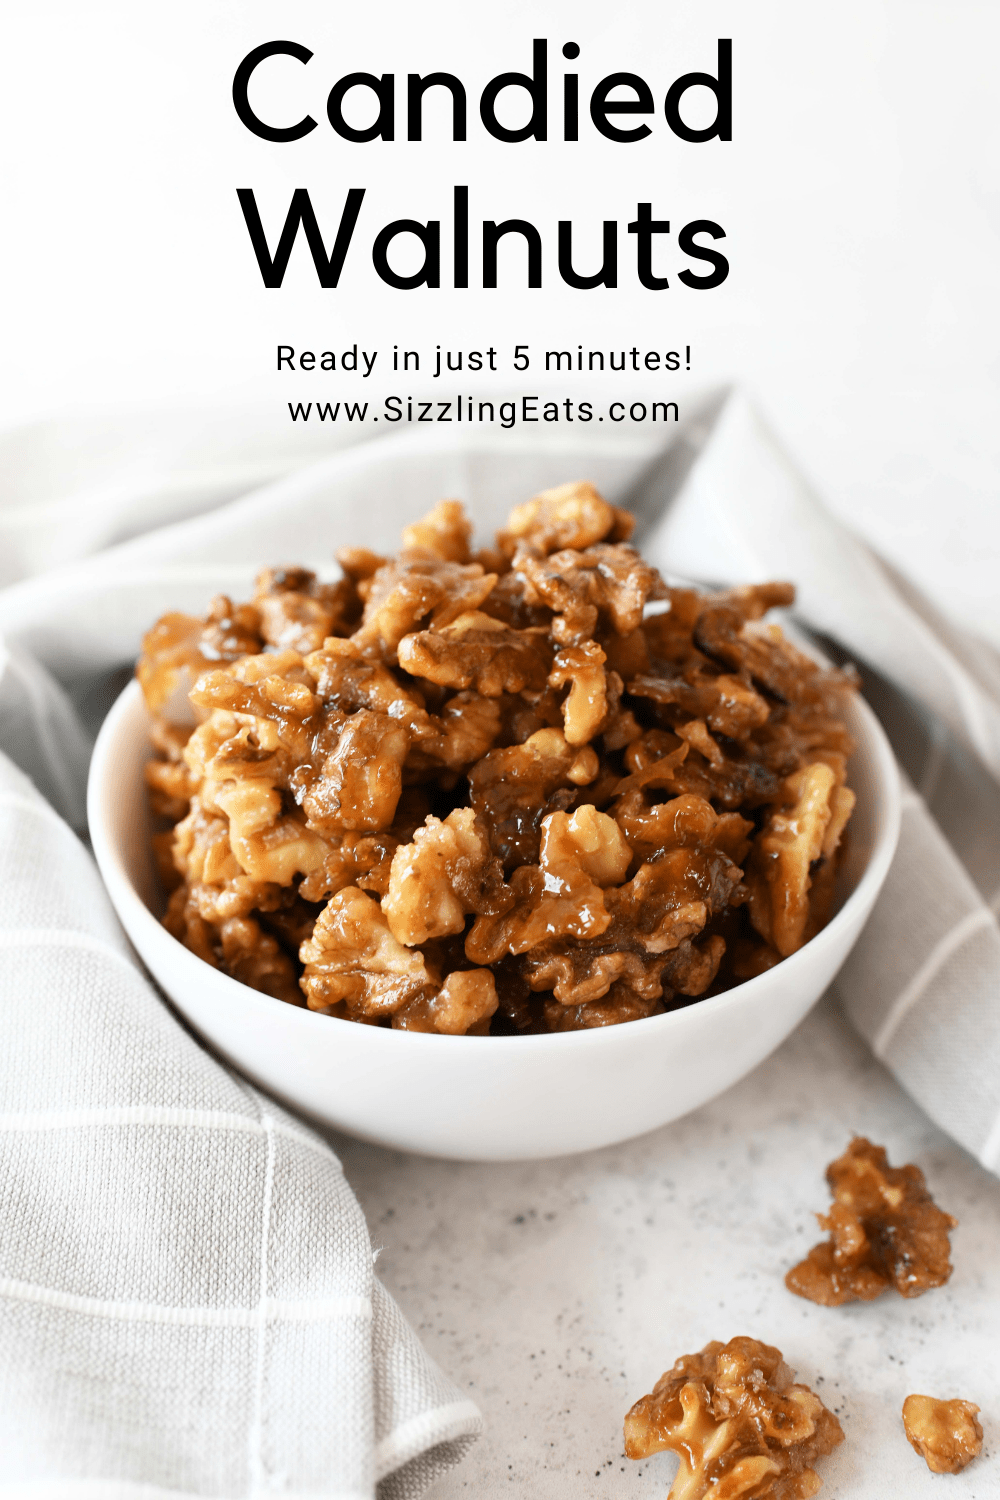 How to Make Candied Walnuts in 5 Minutes